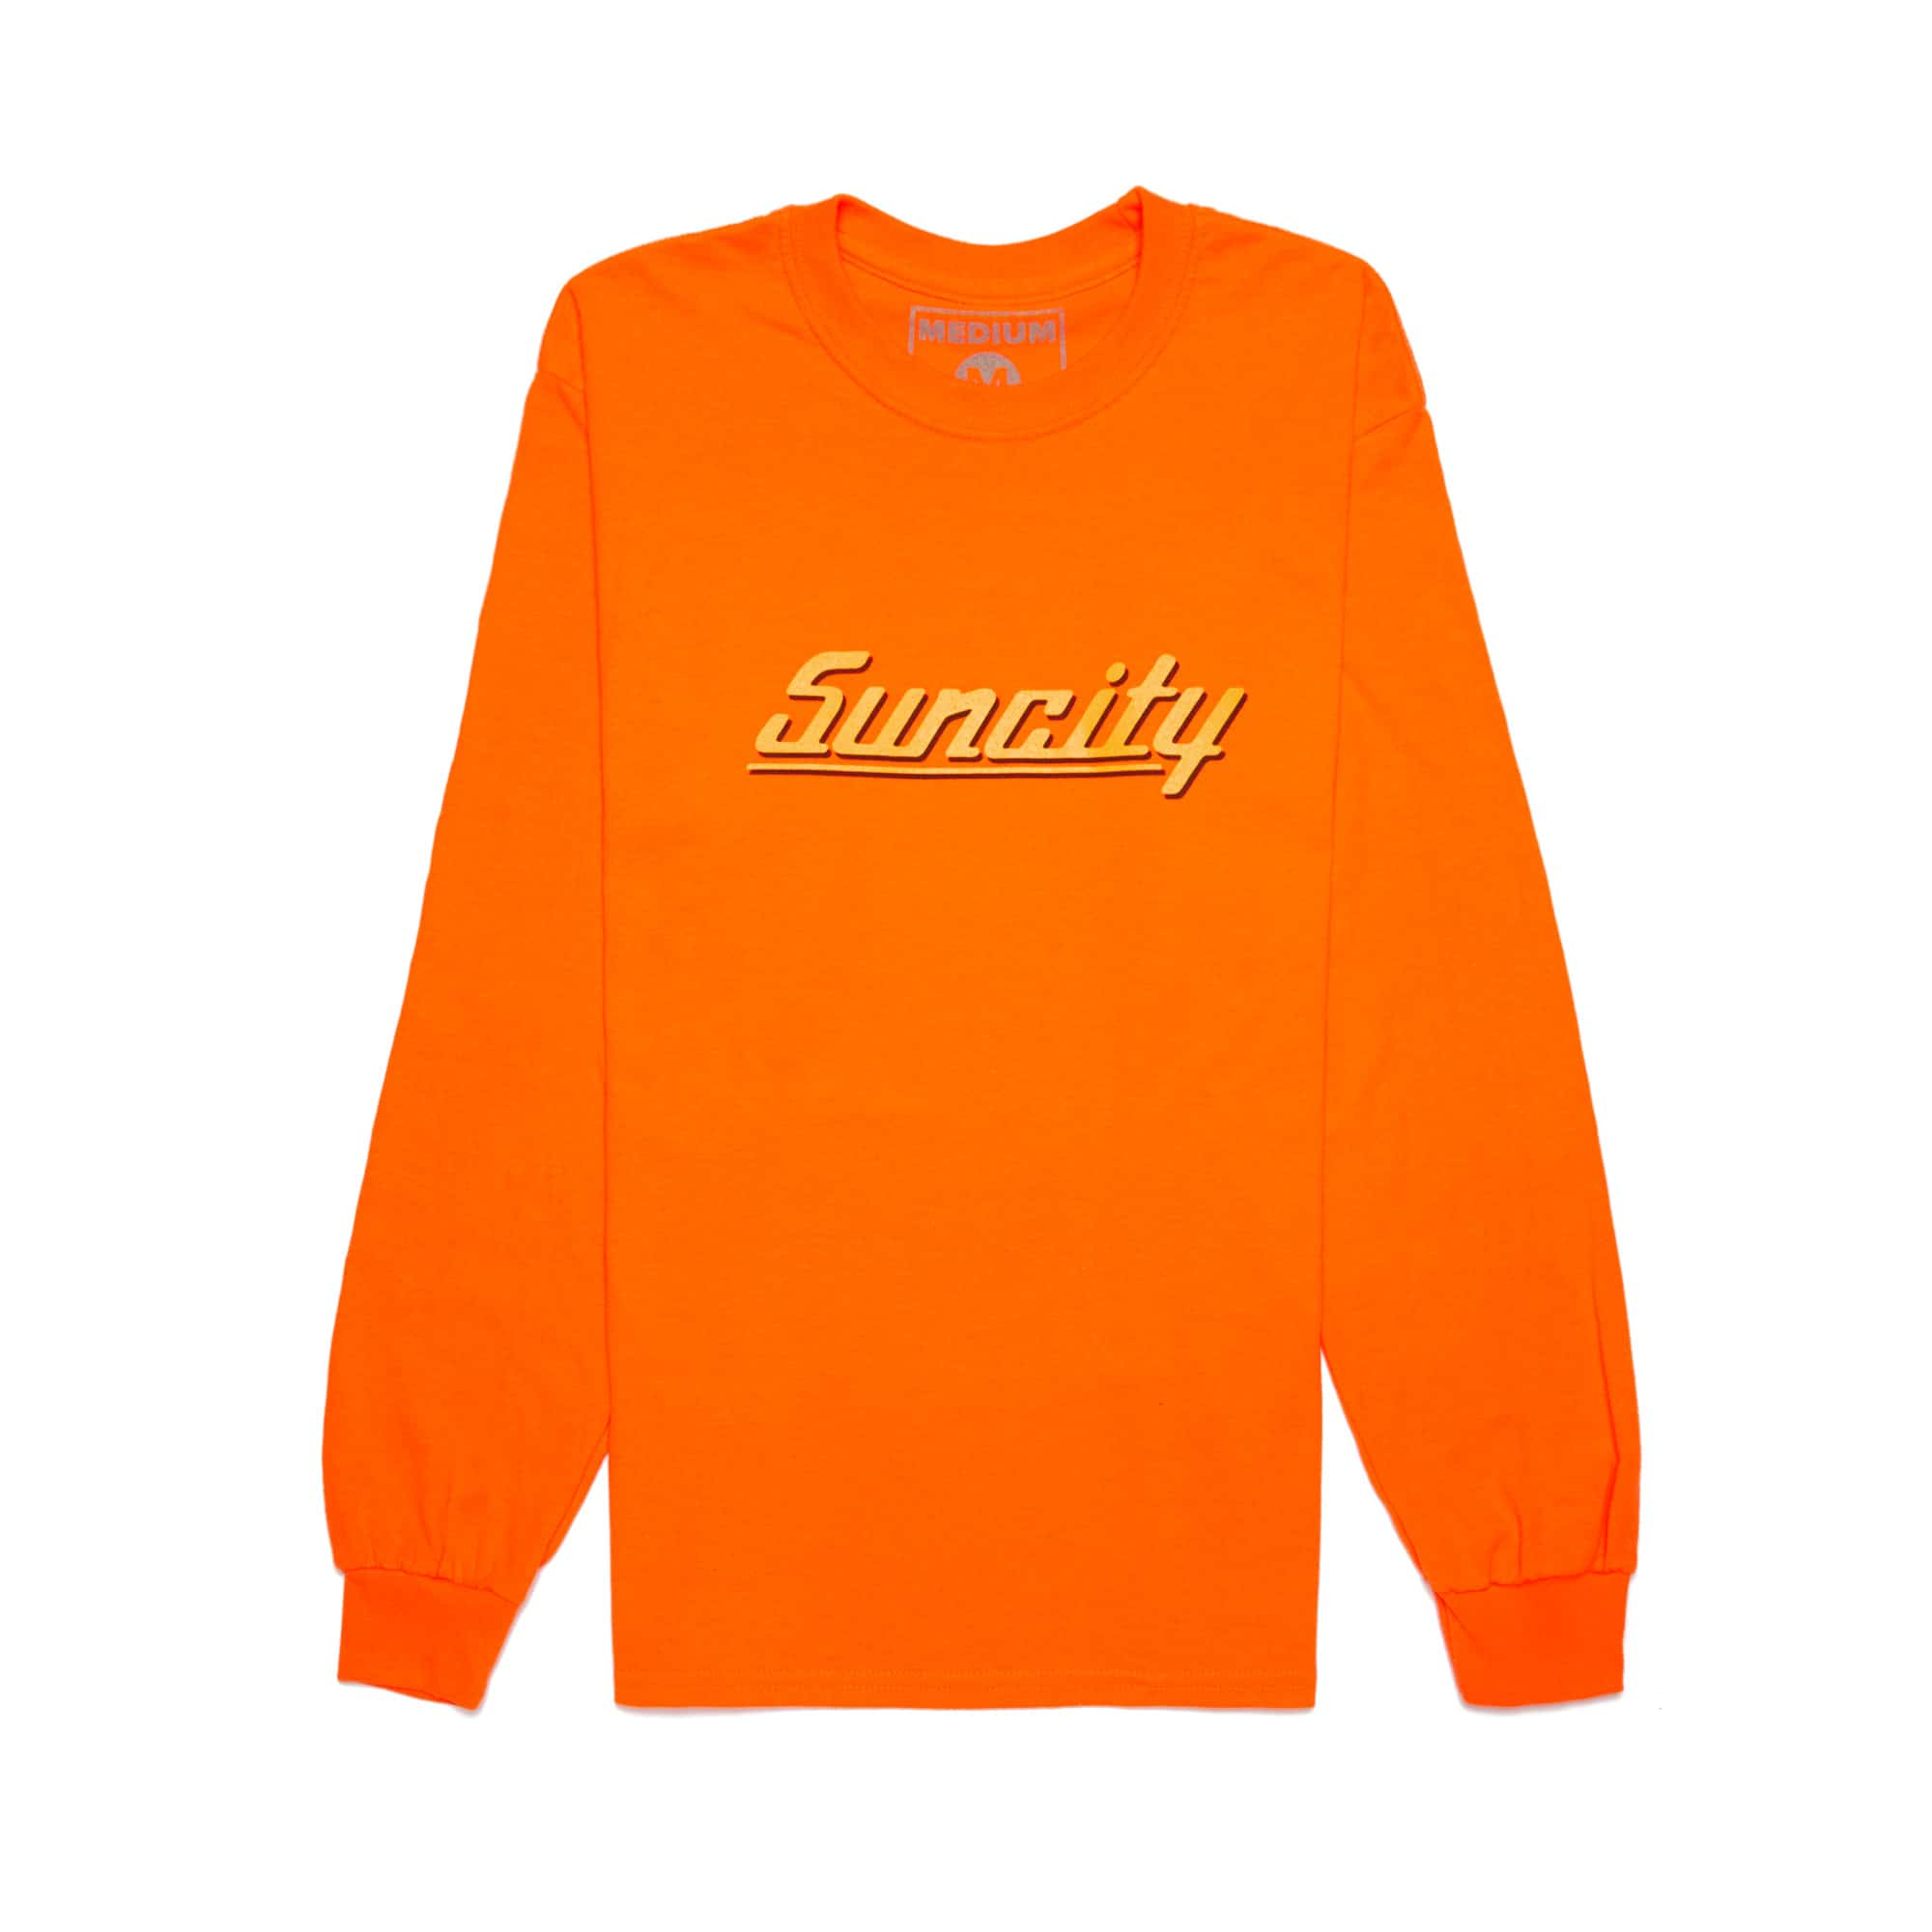 'Suncity' Long Sleeve Tee + Digital Download - Orange